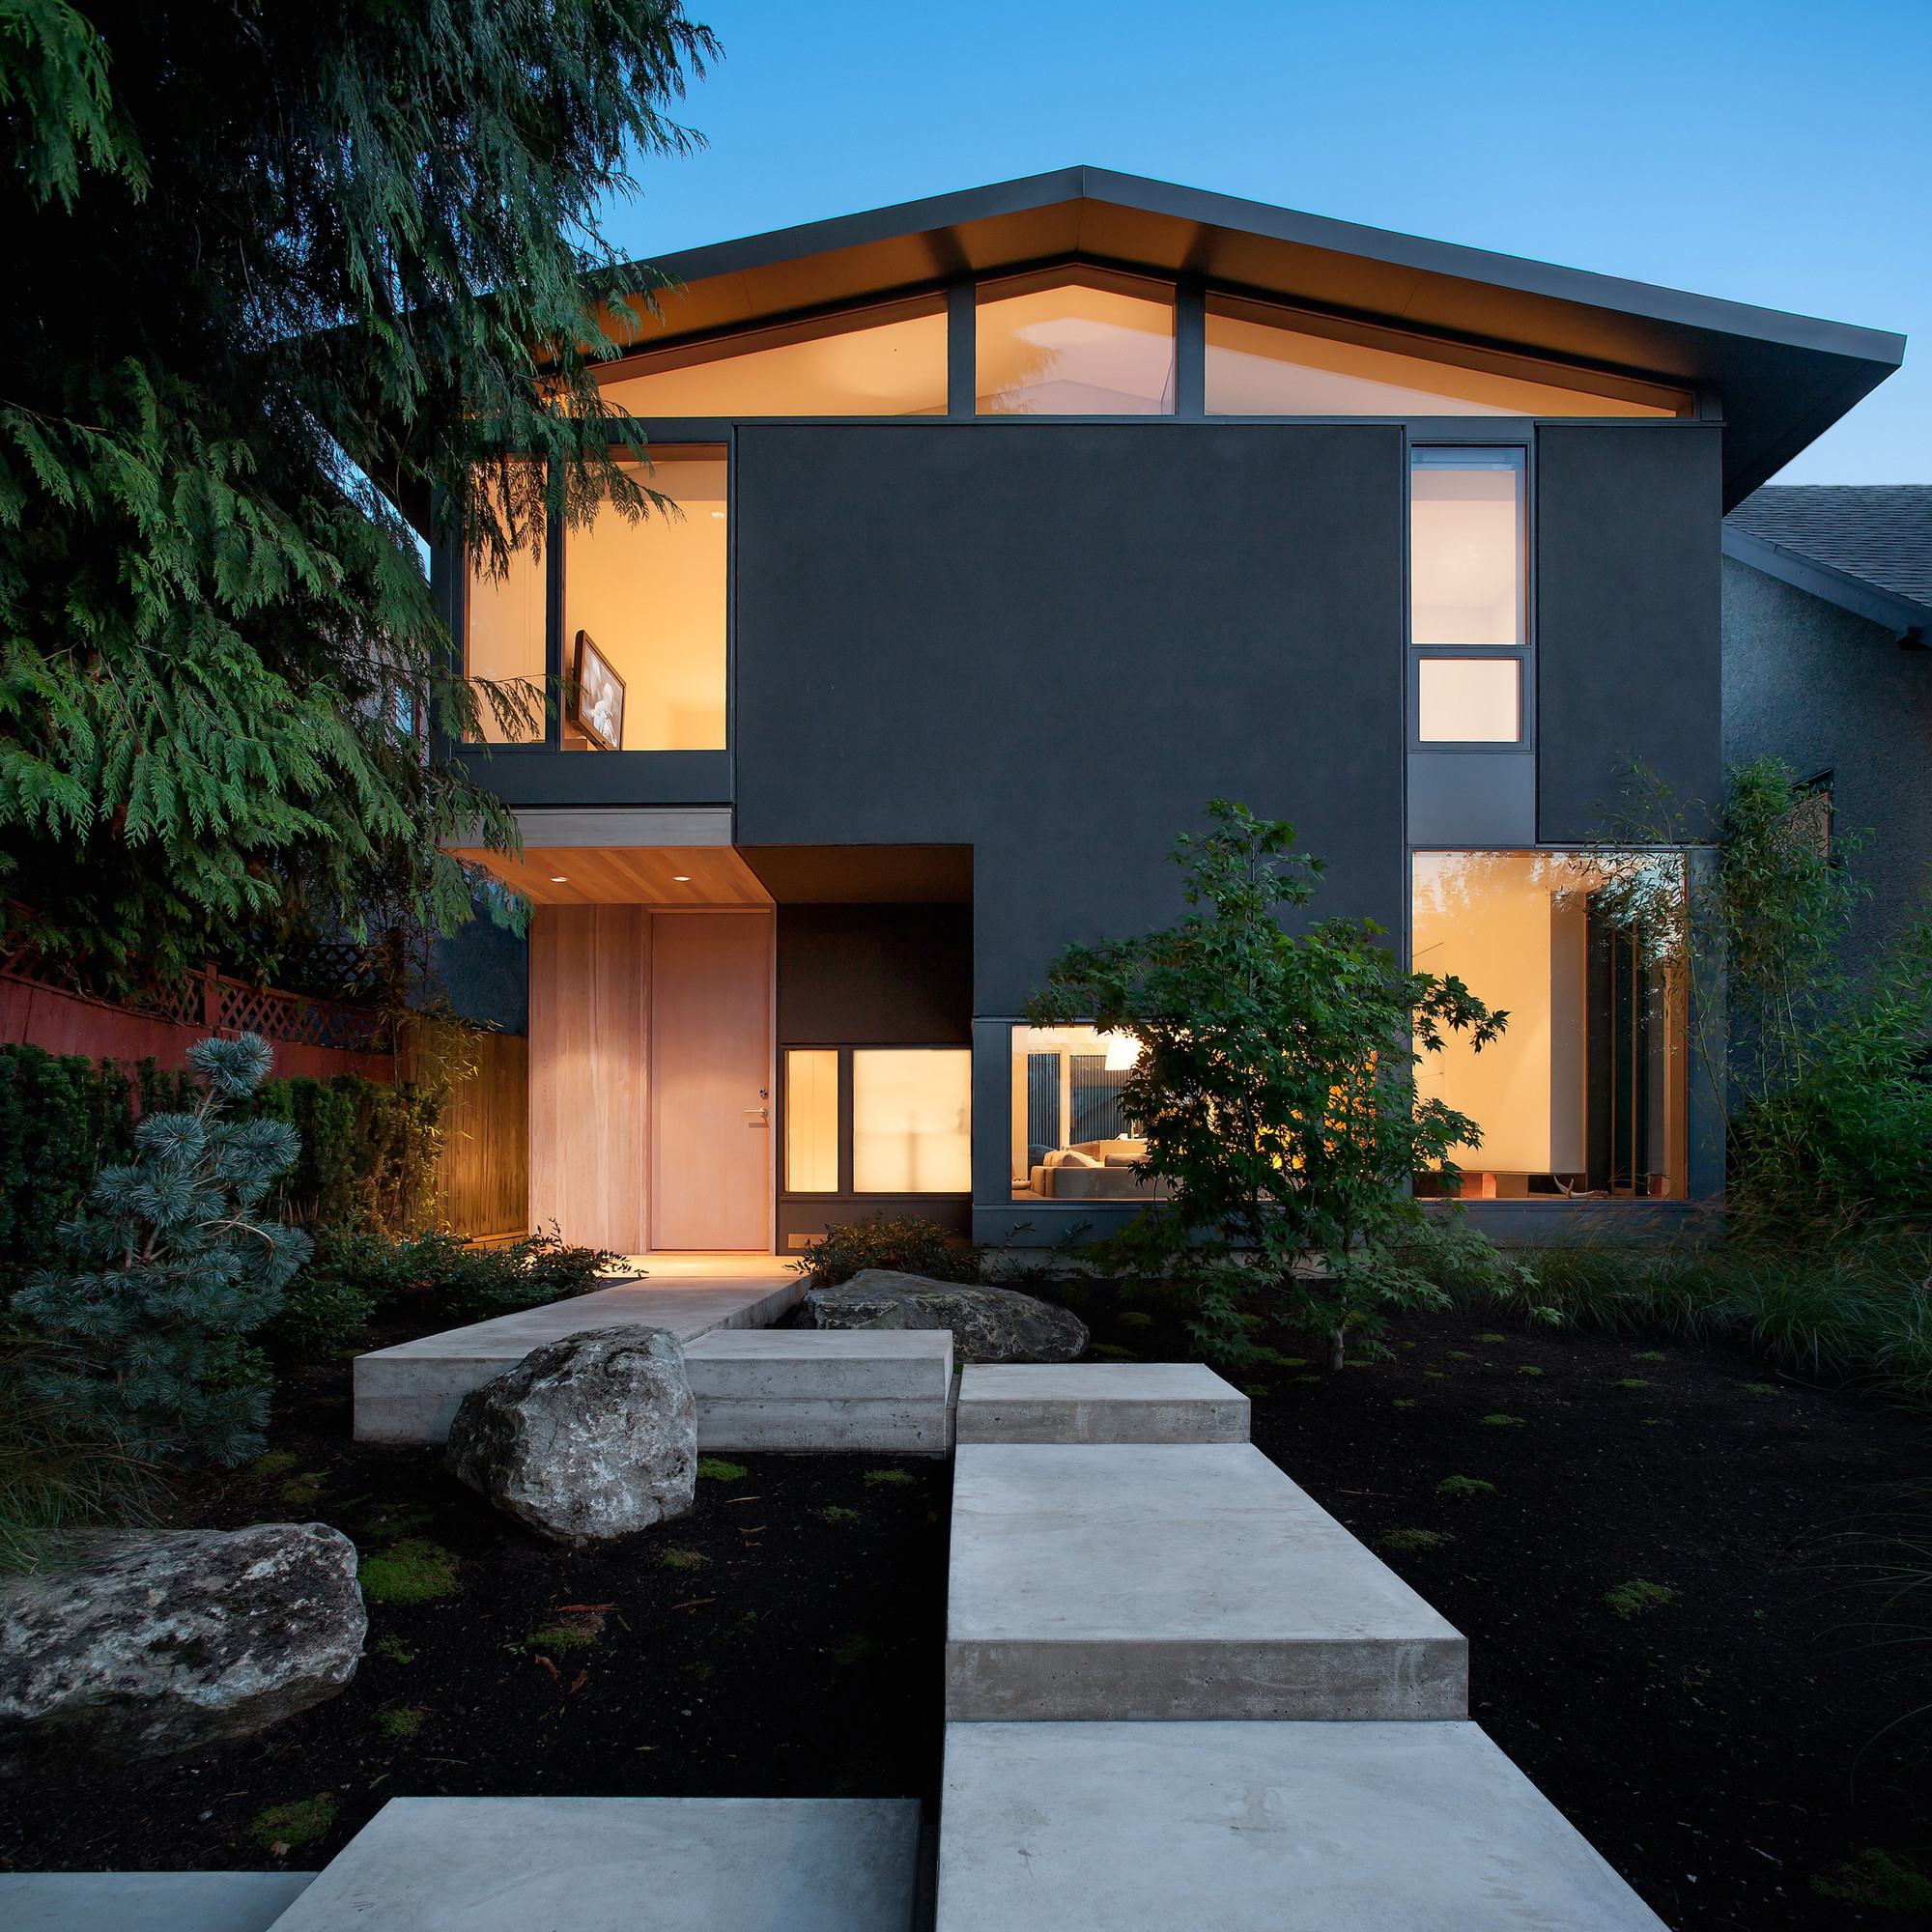 430 House / D'Arcy Jones Architecture, © Sama Jim Canzian